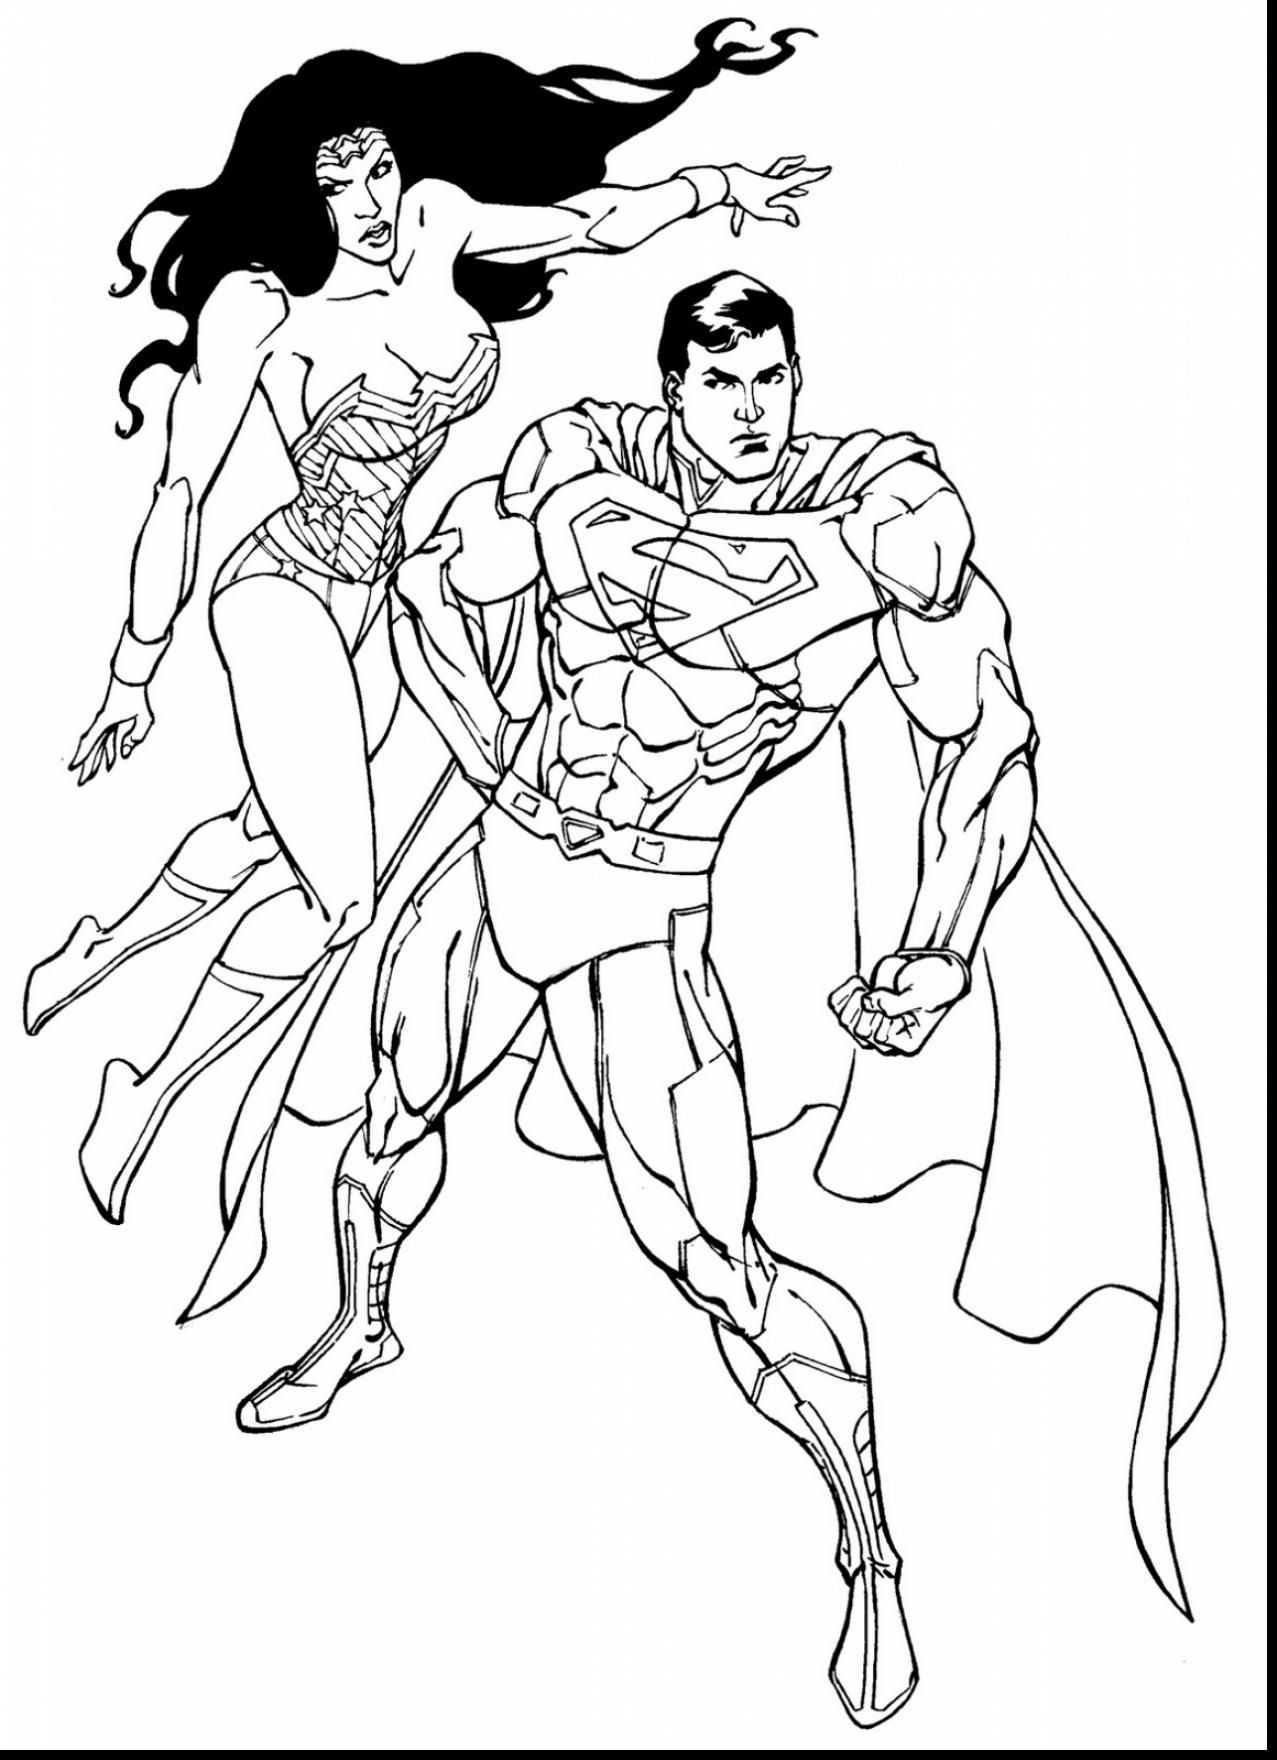 Great superman and wonder woman coloring pages with superman coloring page and superman coloring pages free printable